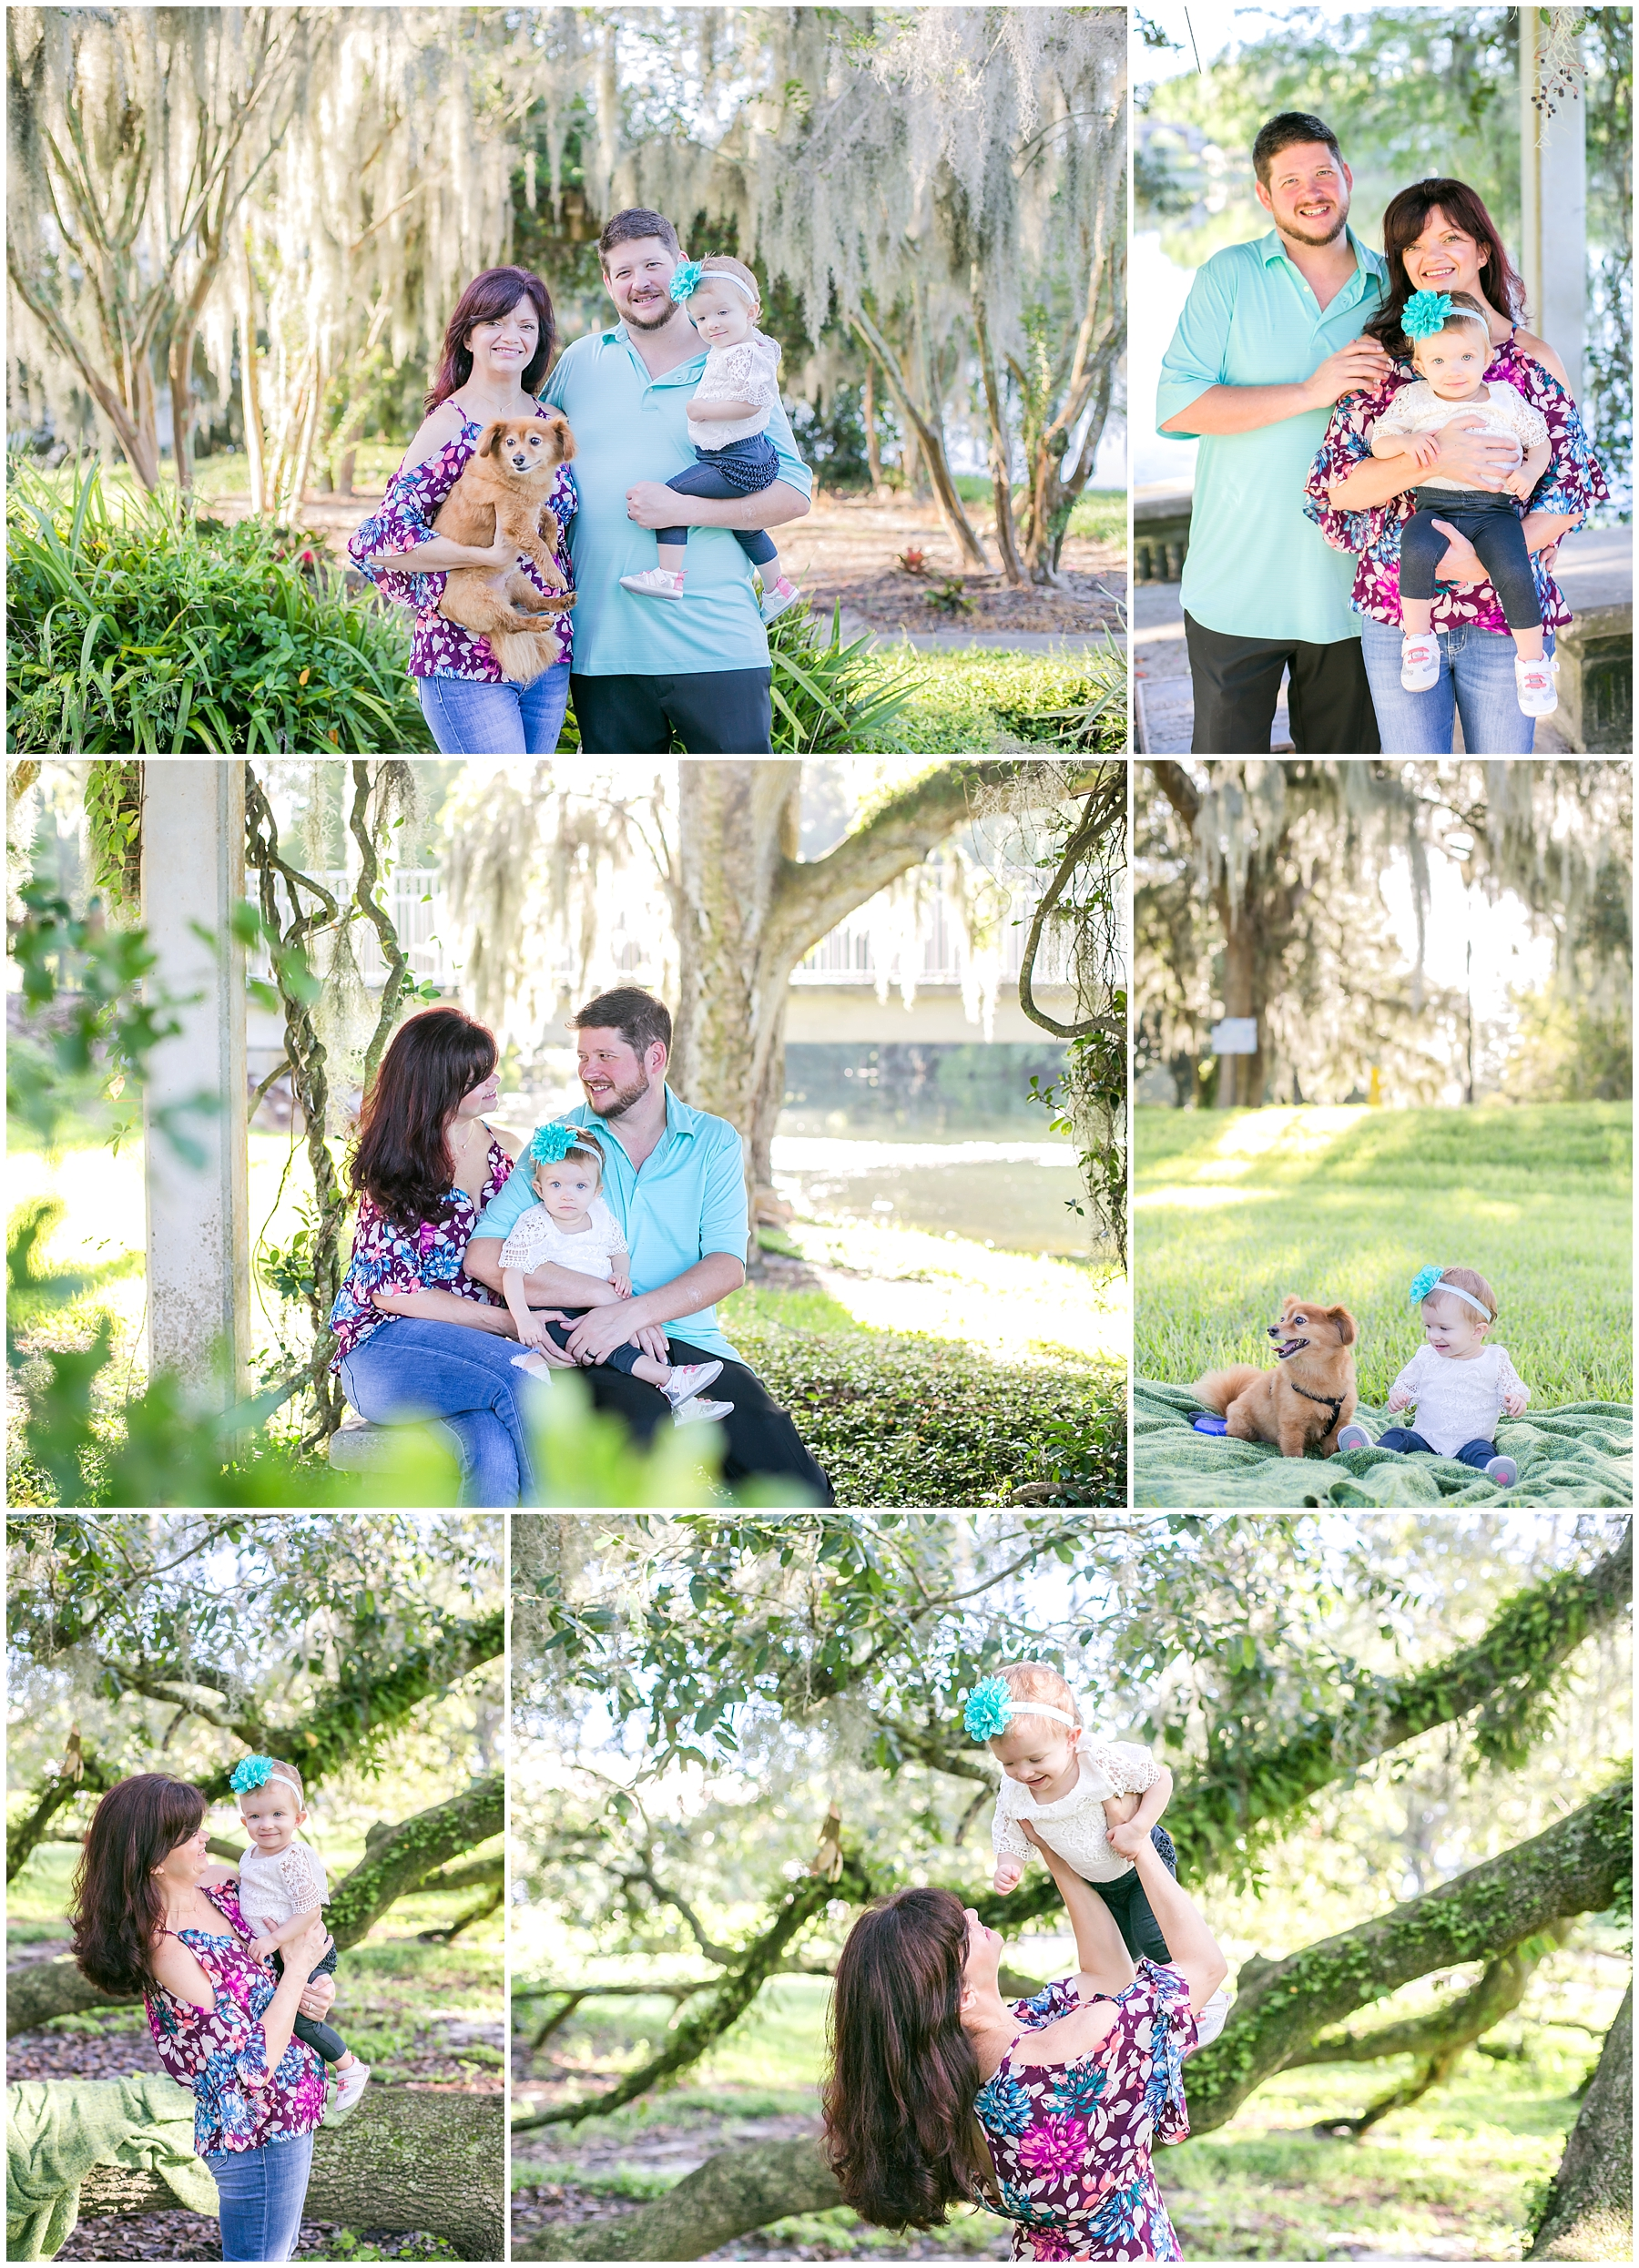 How adorable are they!? Oh my gosh, I love when clients bring their pets to sessions! What's better than a family session with a baby and a puppy!?